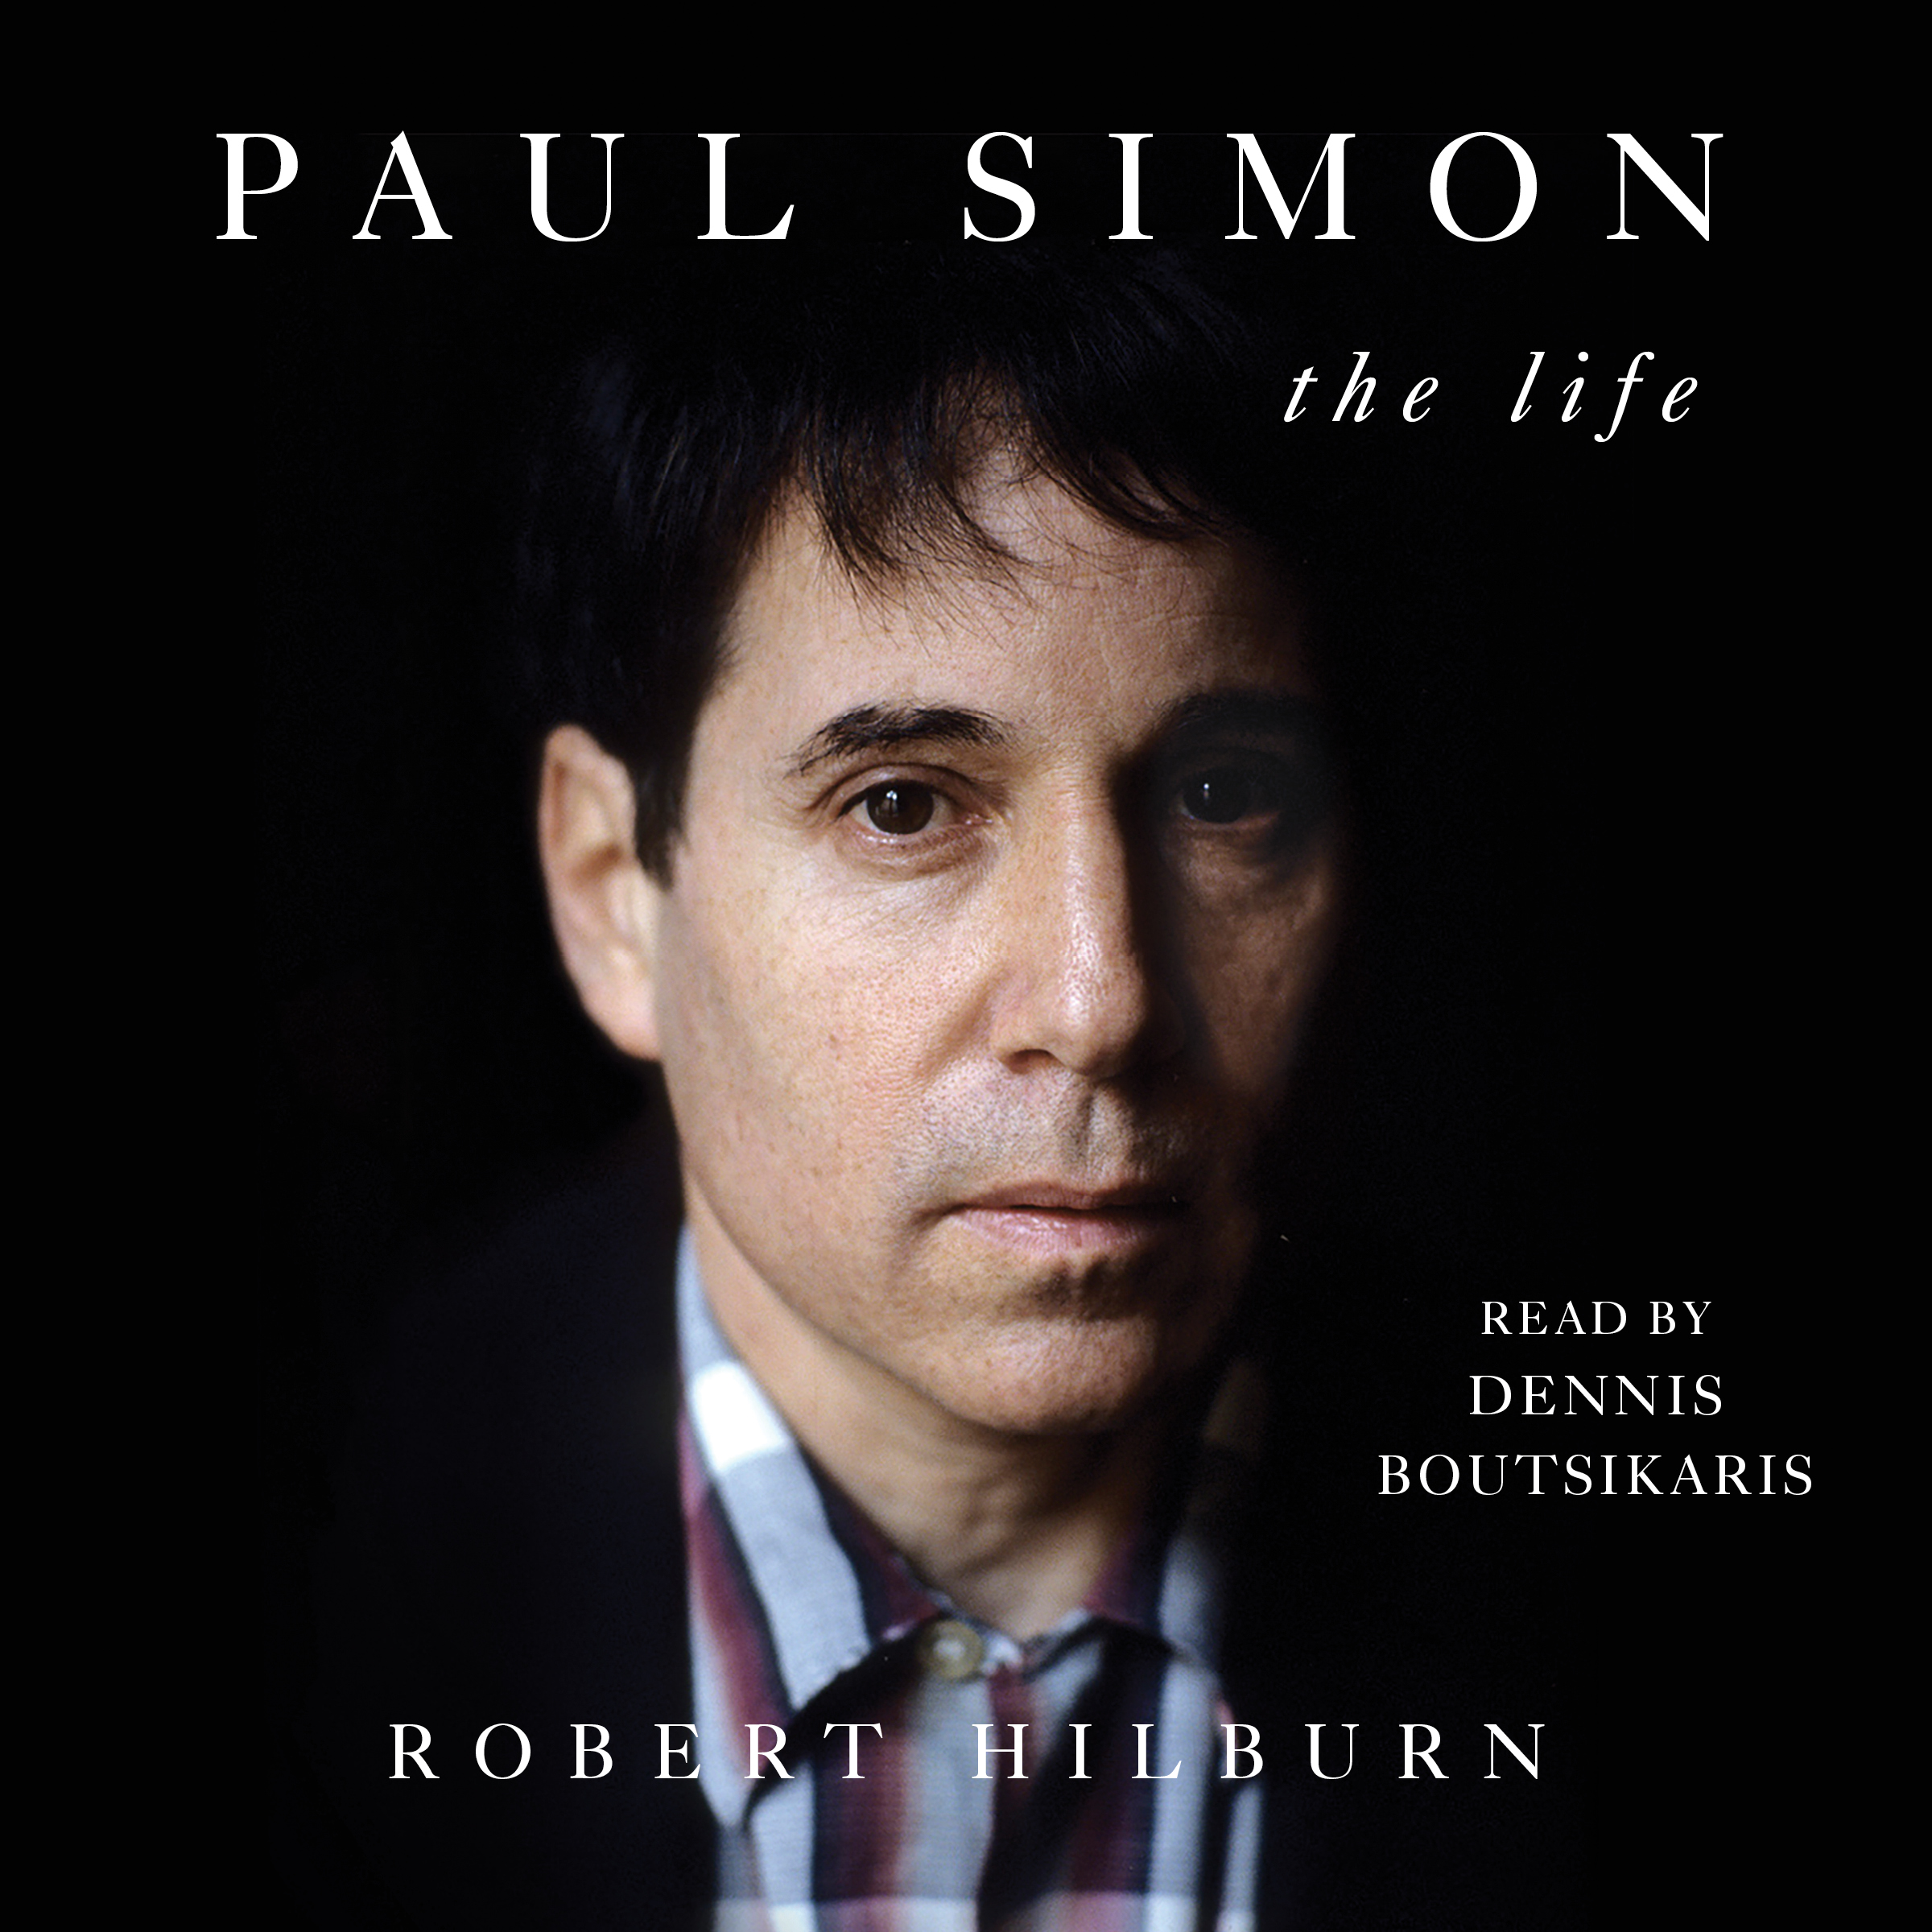 Paul simon 9781508259930 hr